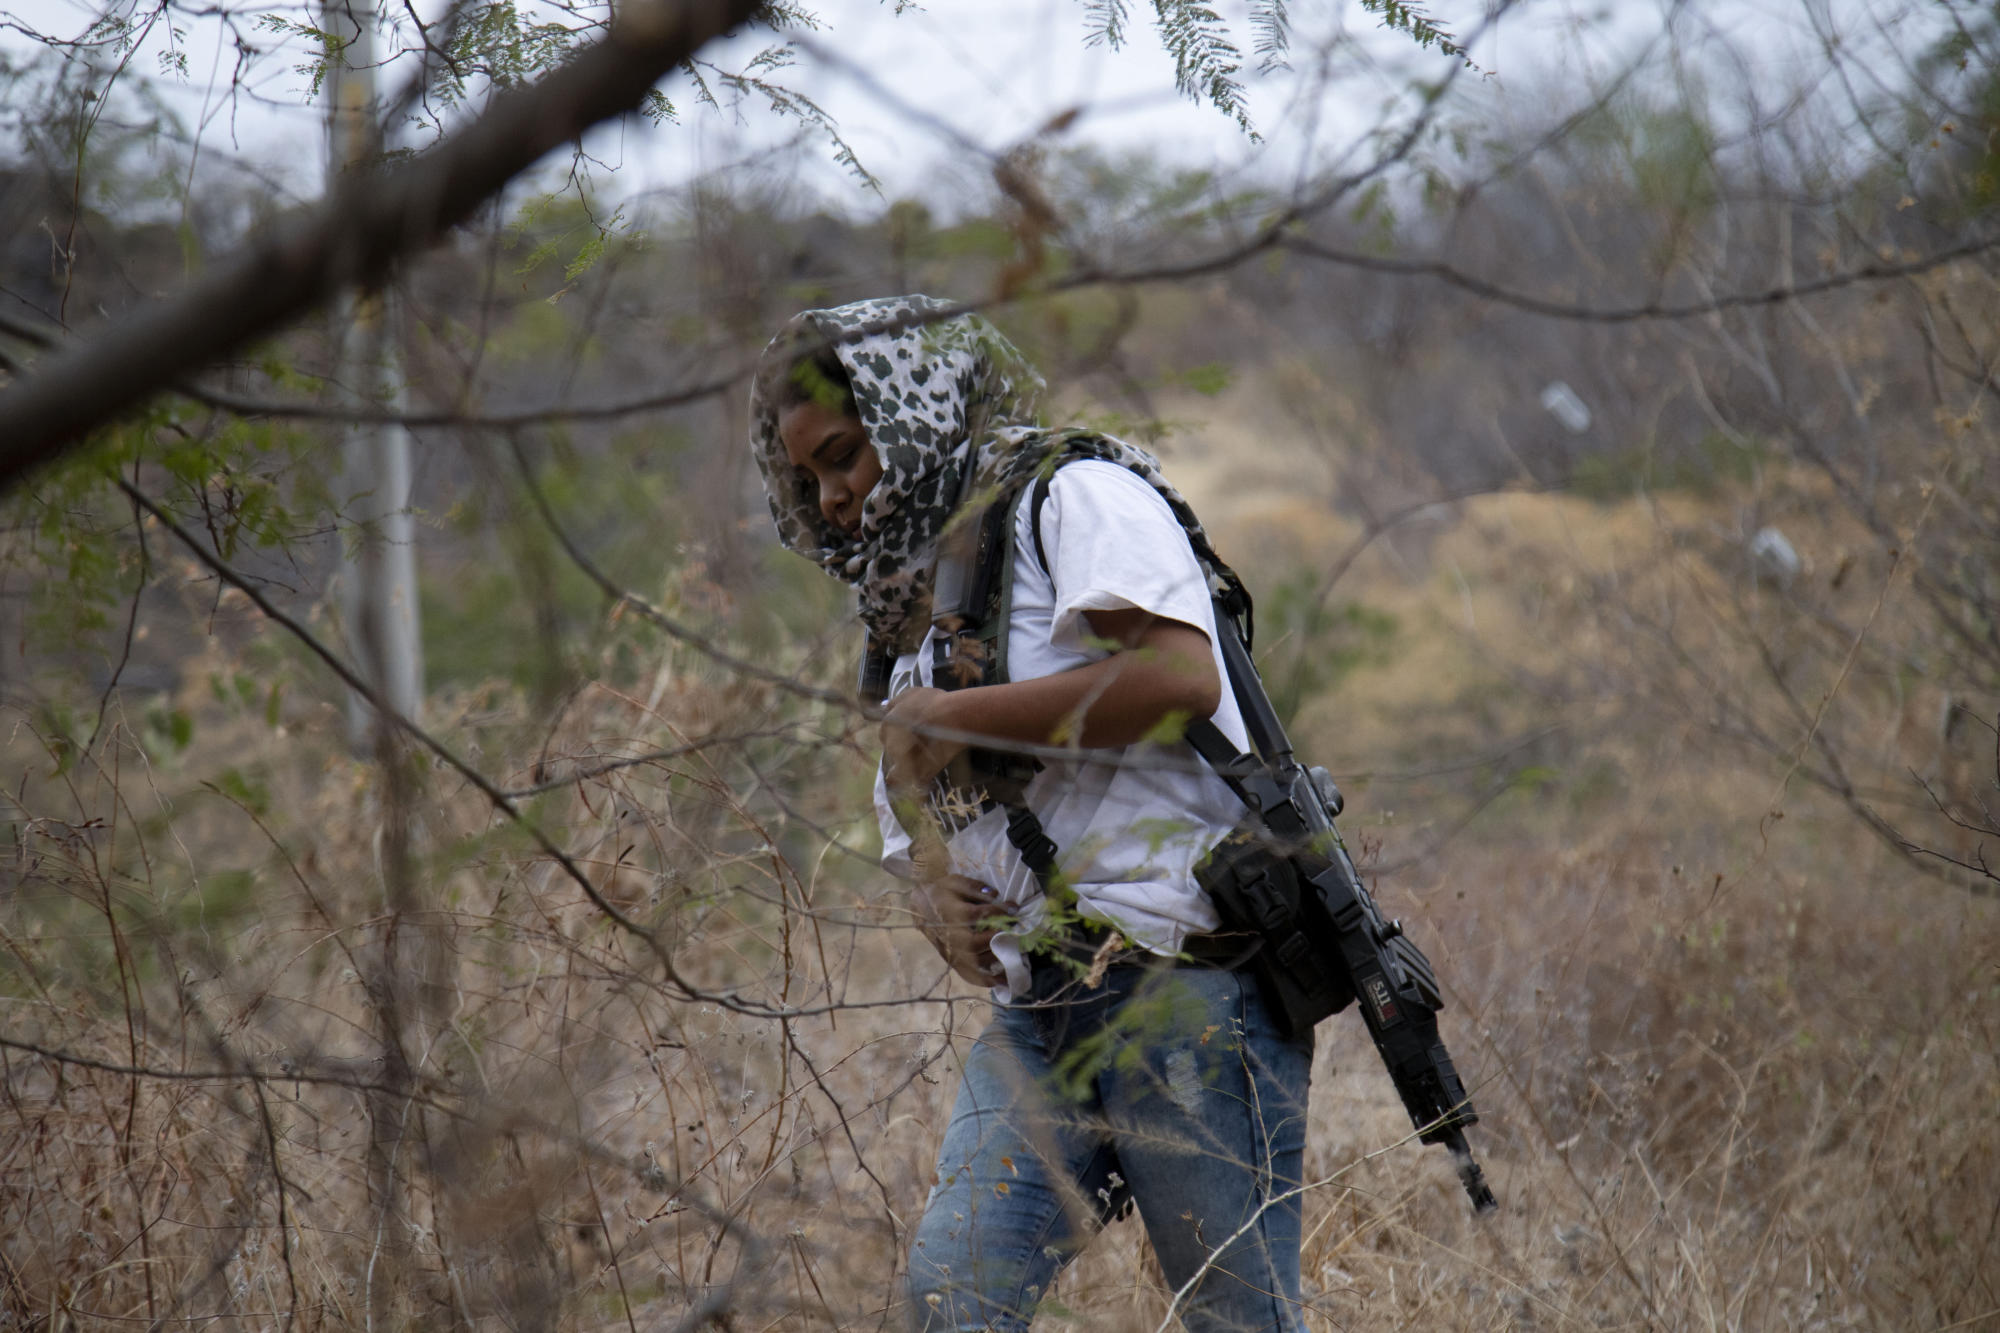 In Mexico, women take the front lines as vigilantes